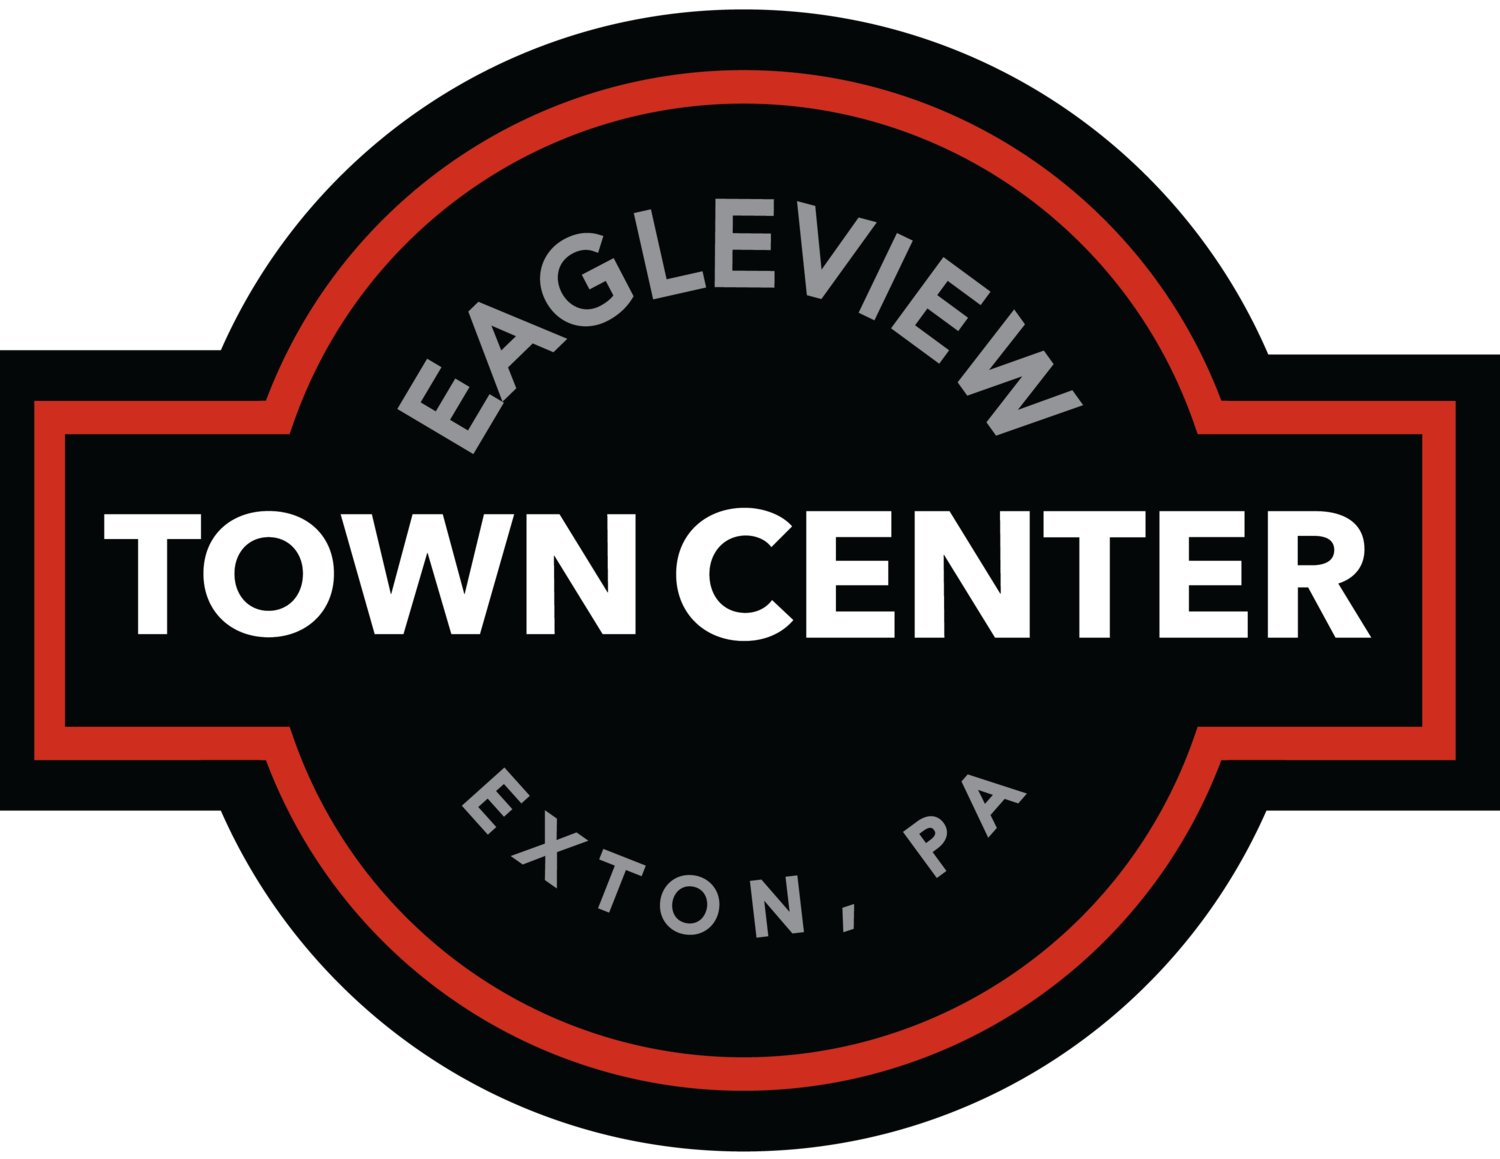 Eagleview Town Center